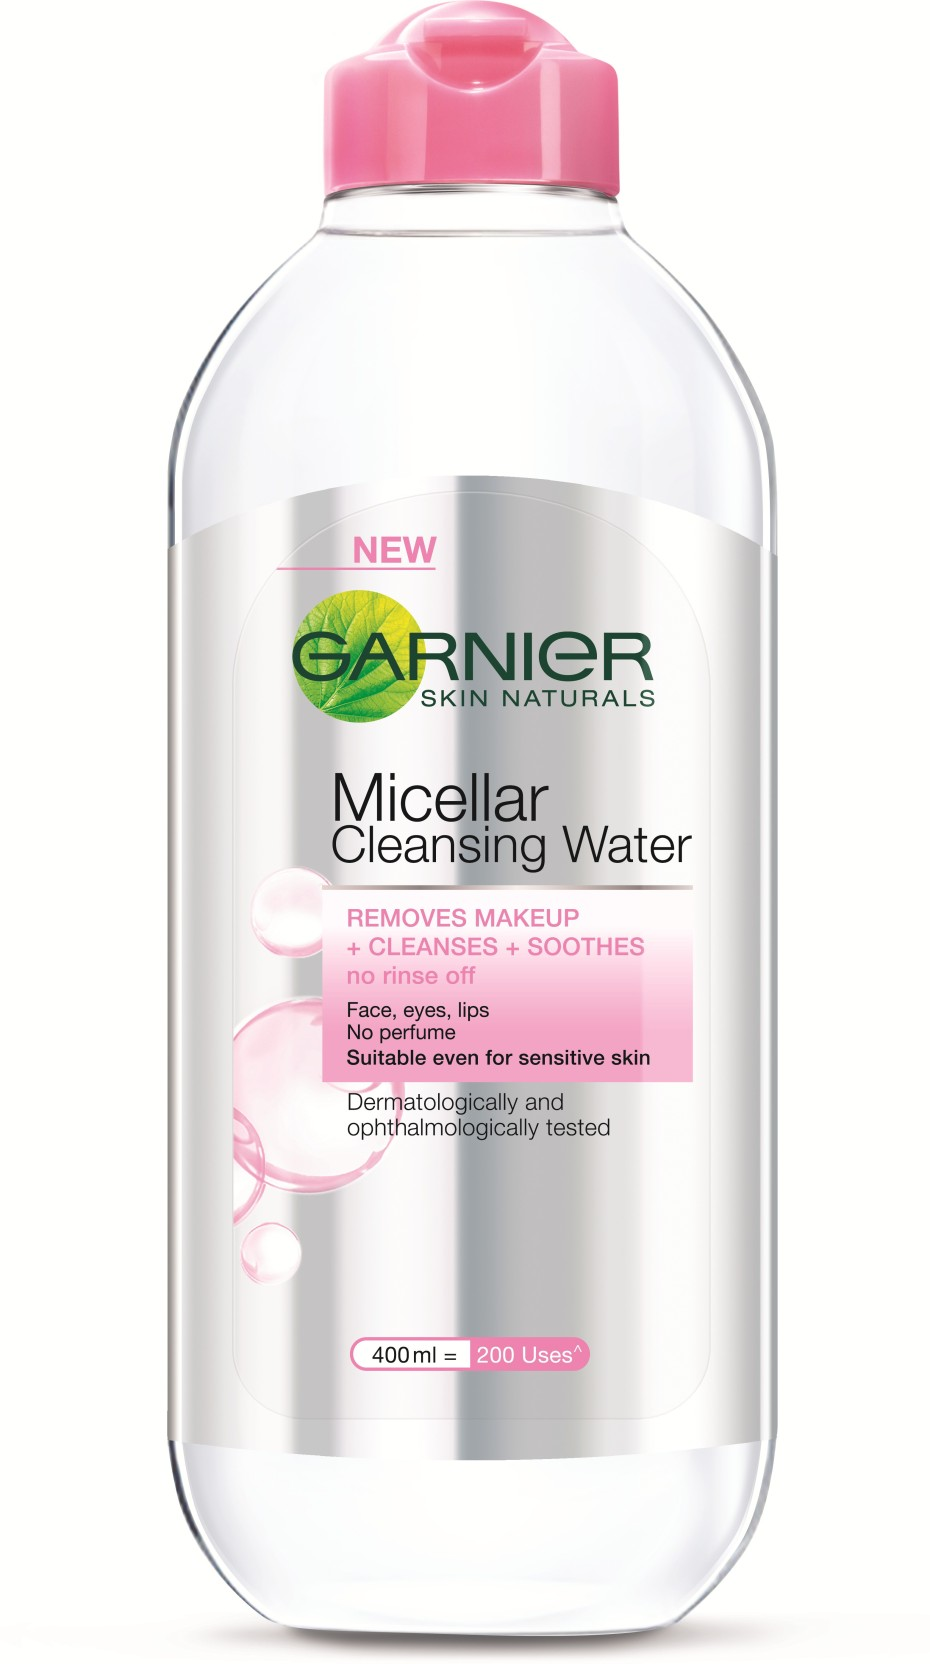 Garnier Skin Naturals Micellar Cleansing Water Makeup Remover 125ml Add To Cart